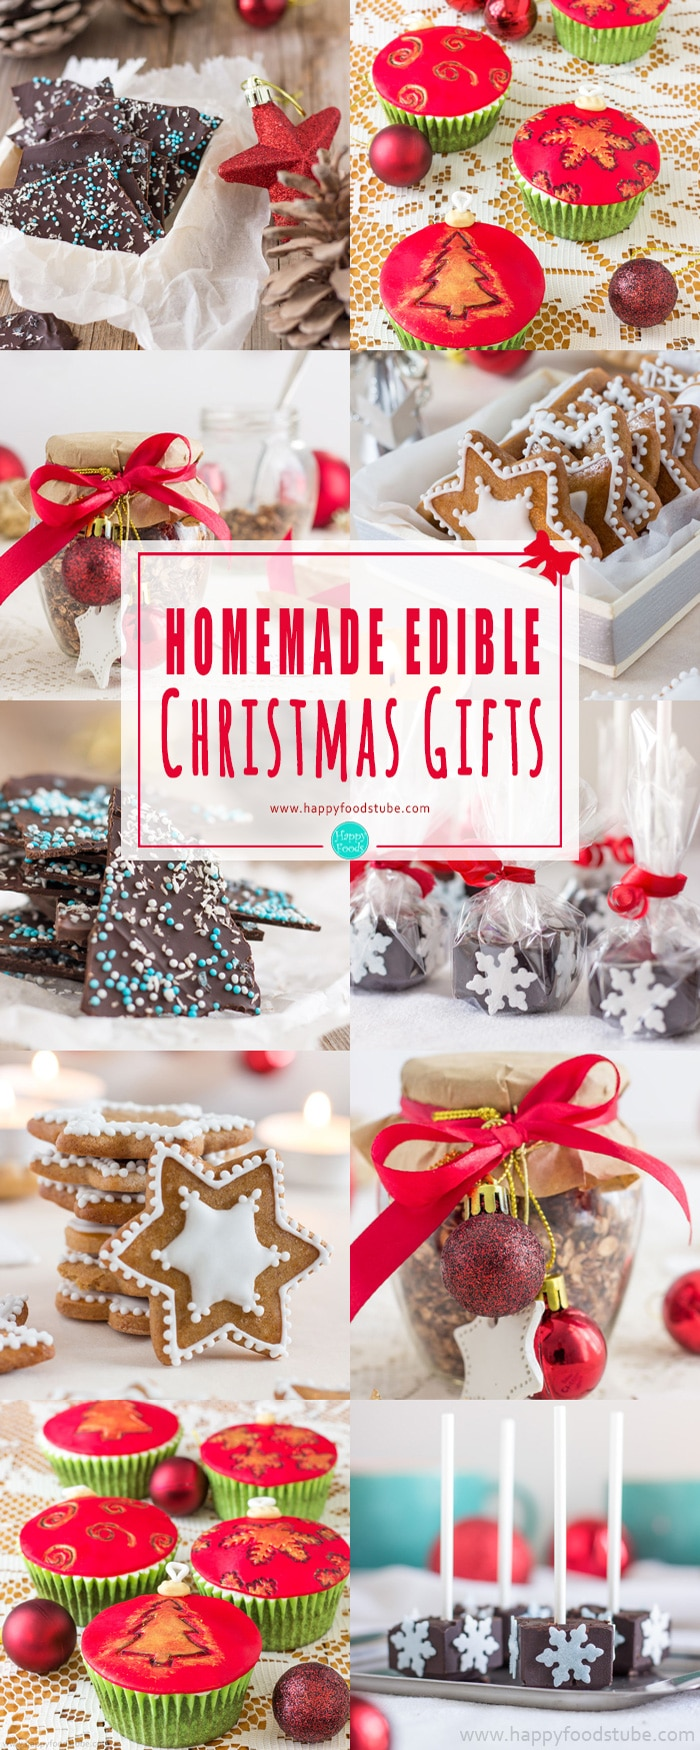 Are you looking for homemade edible Christmas gifts? These sweet treats wrapped in festive packaging make great gifts for your family and friends! #homemade #edible #christmas #gifts #holidays #inexpensive #stockingstuffers #DIY #easy #xmas